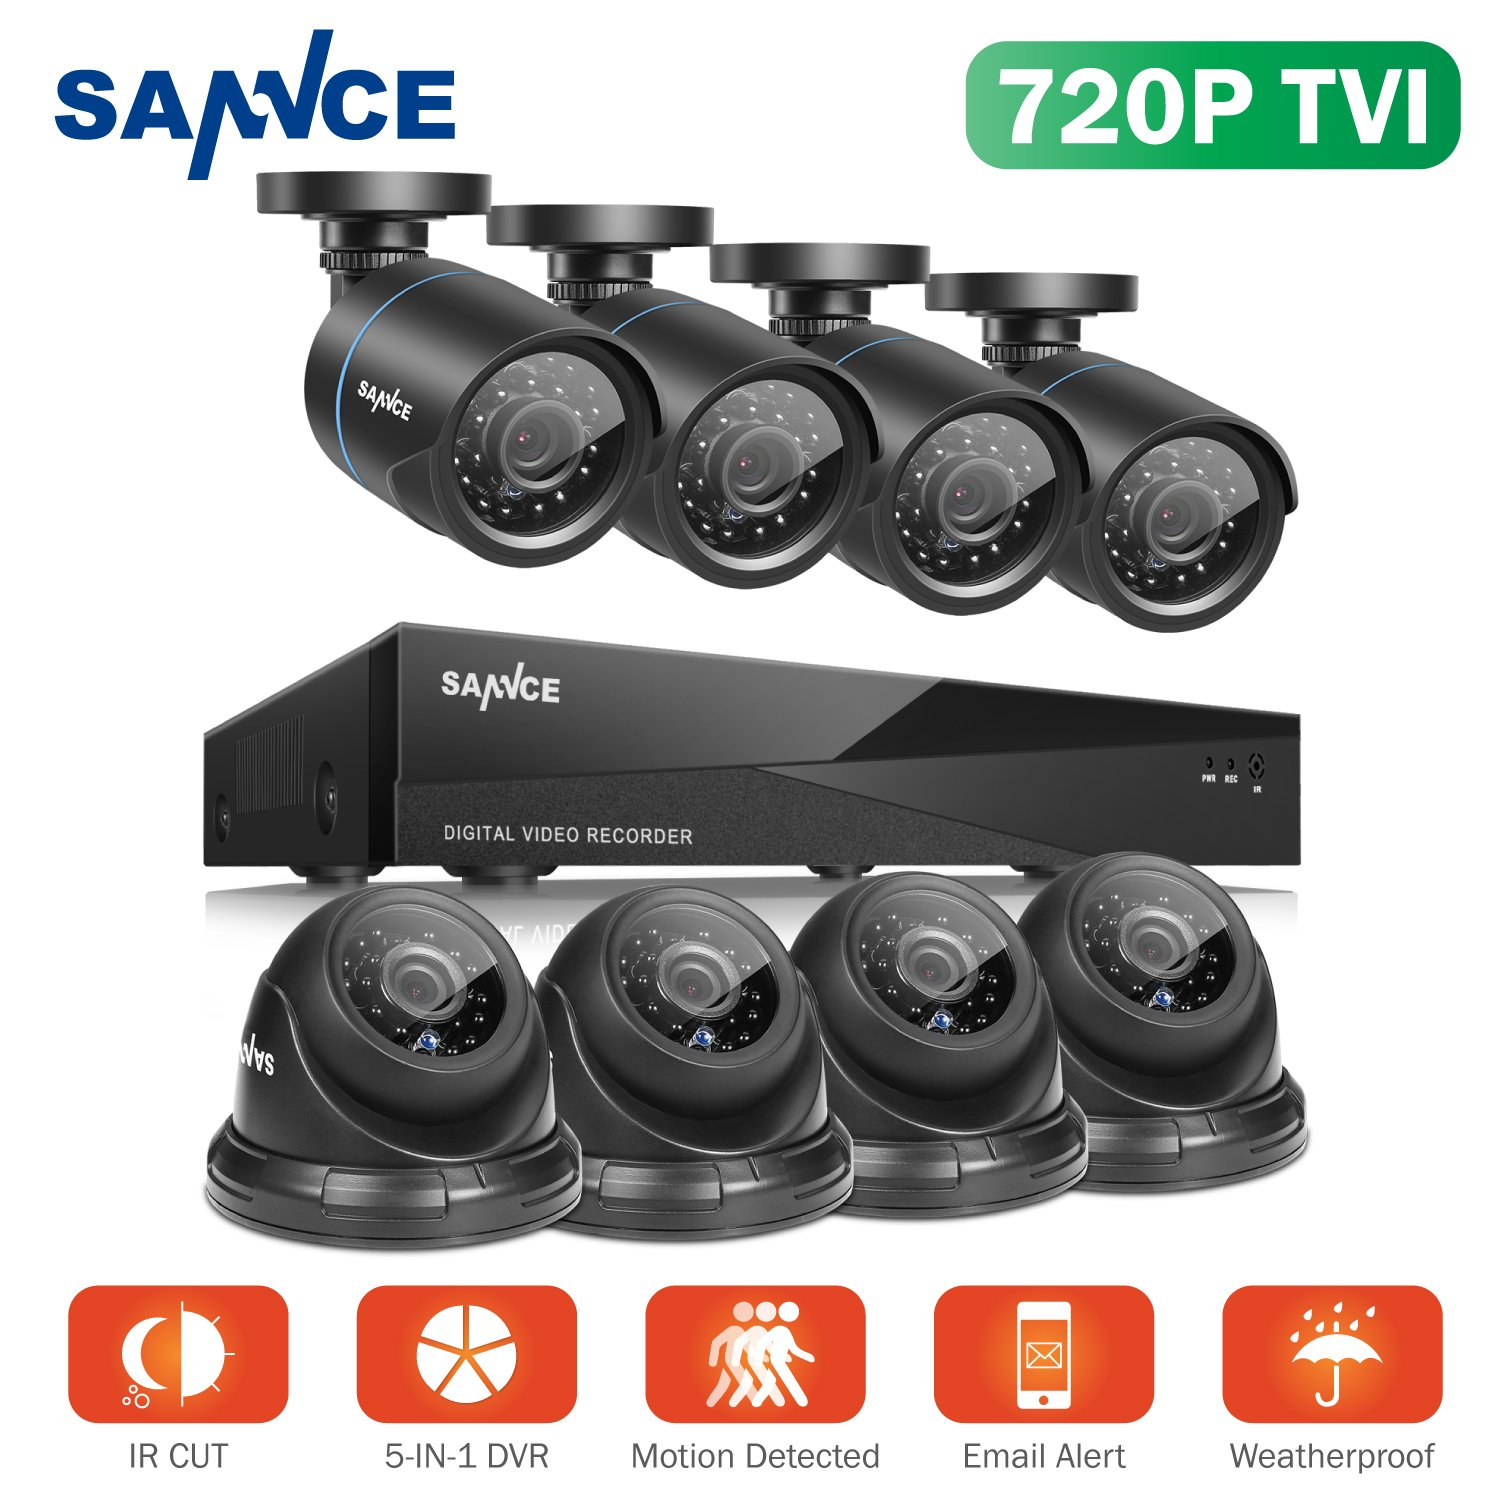 SANNCE 8CH 1080N DVR Recorder Home Security Systems and (8) 1280TVL Outdoor/Indoor Weatherproof Superior Night Vision CCTV Cameras with Remote Access and Motion Detection, NO HDD by SANNCE (Image #1)